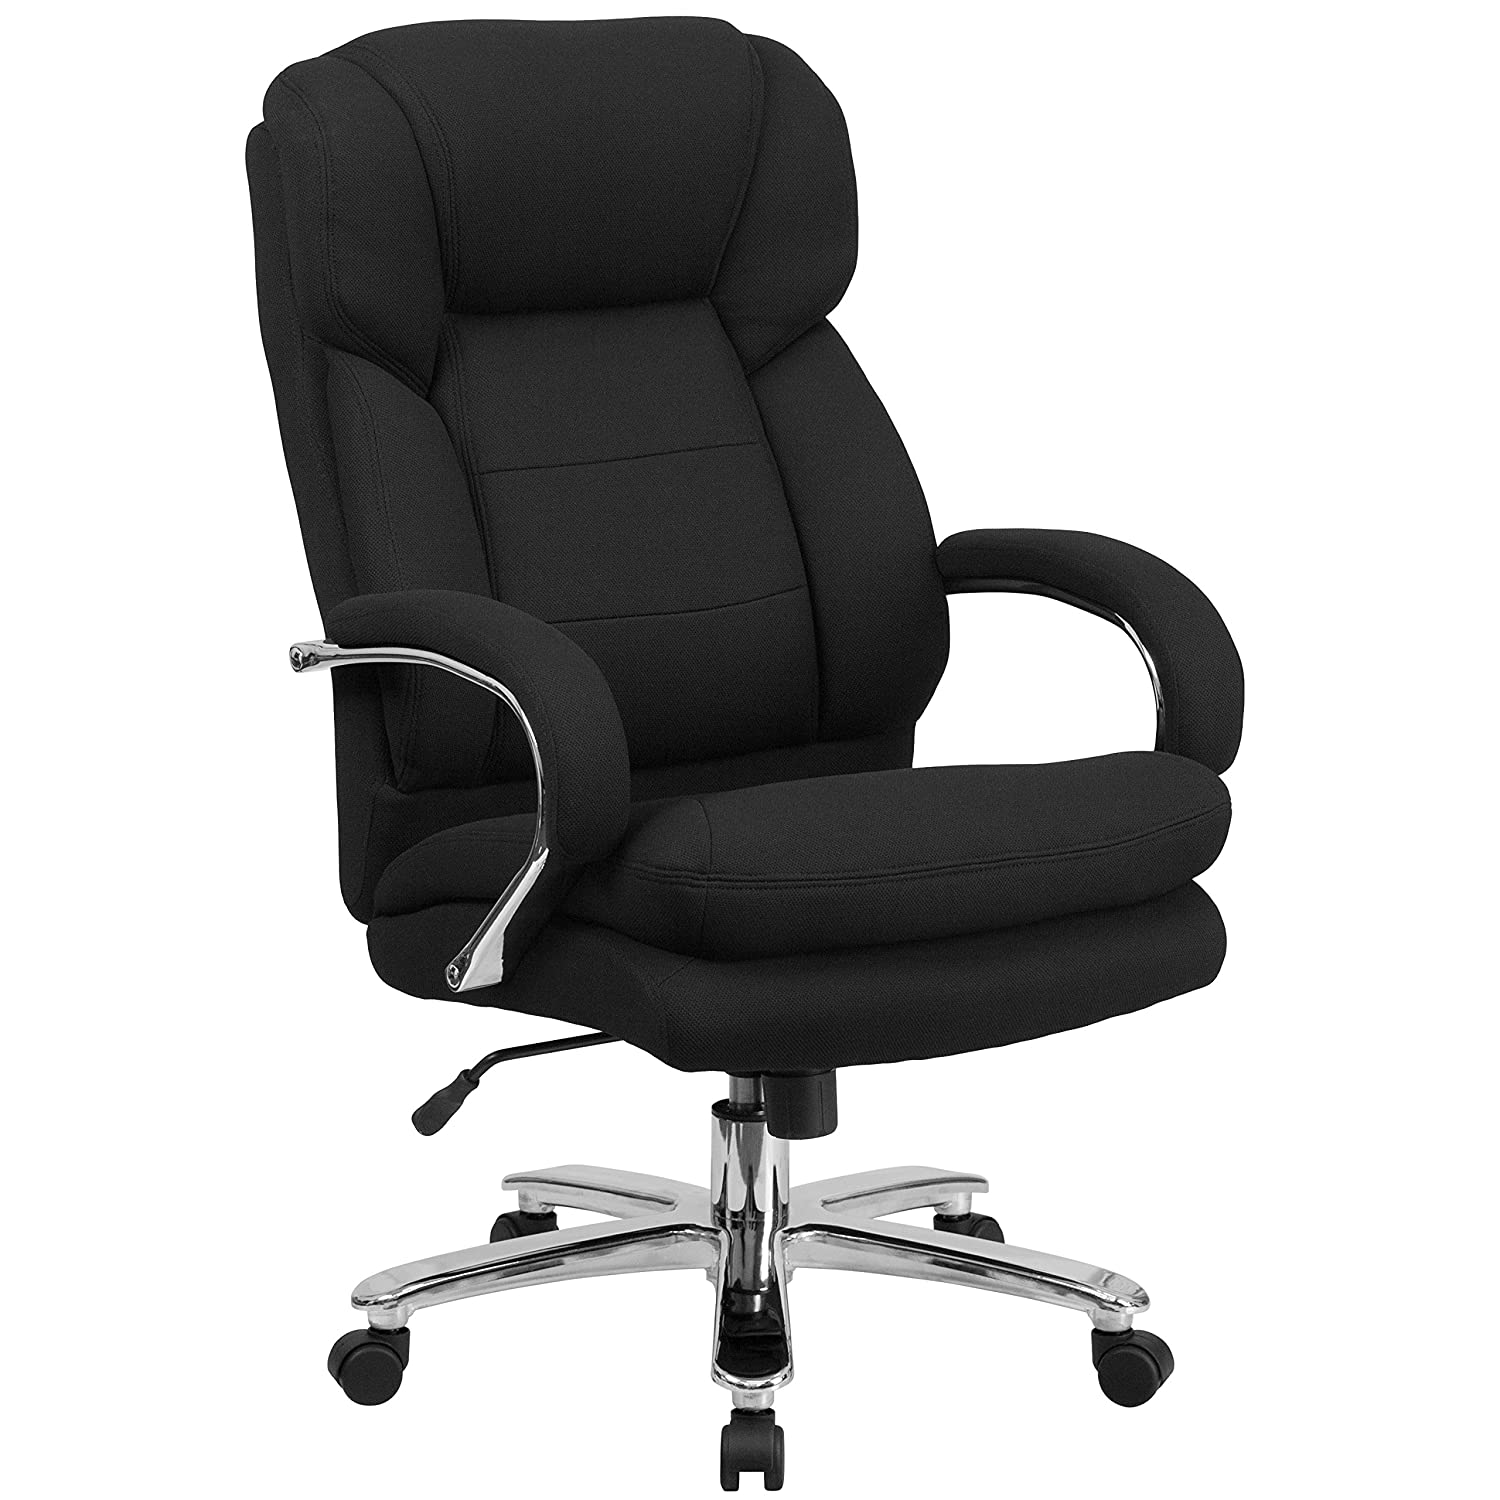 HERCULES Series 24-7 Intensive Use - Multi-Shift - Big & Tall 500 lb. Capacity Black Fabric Executive Swivel Chair